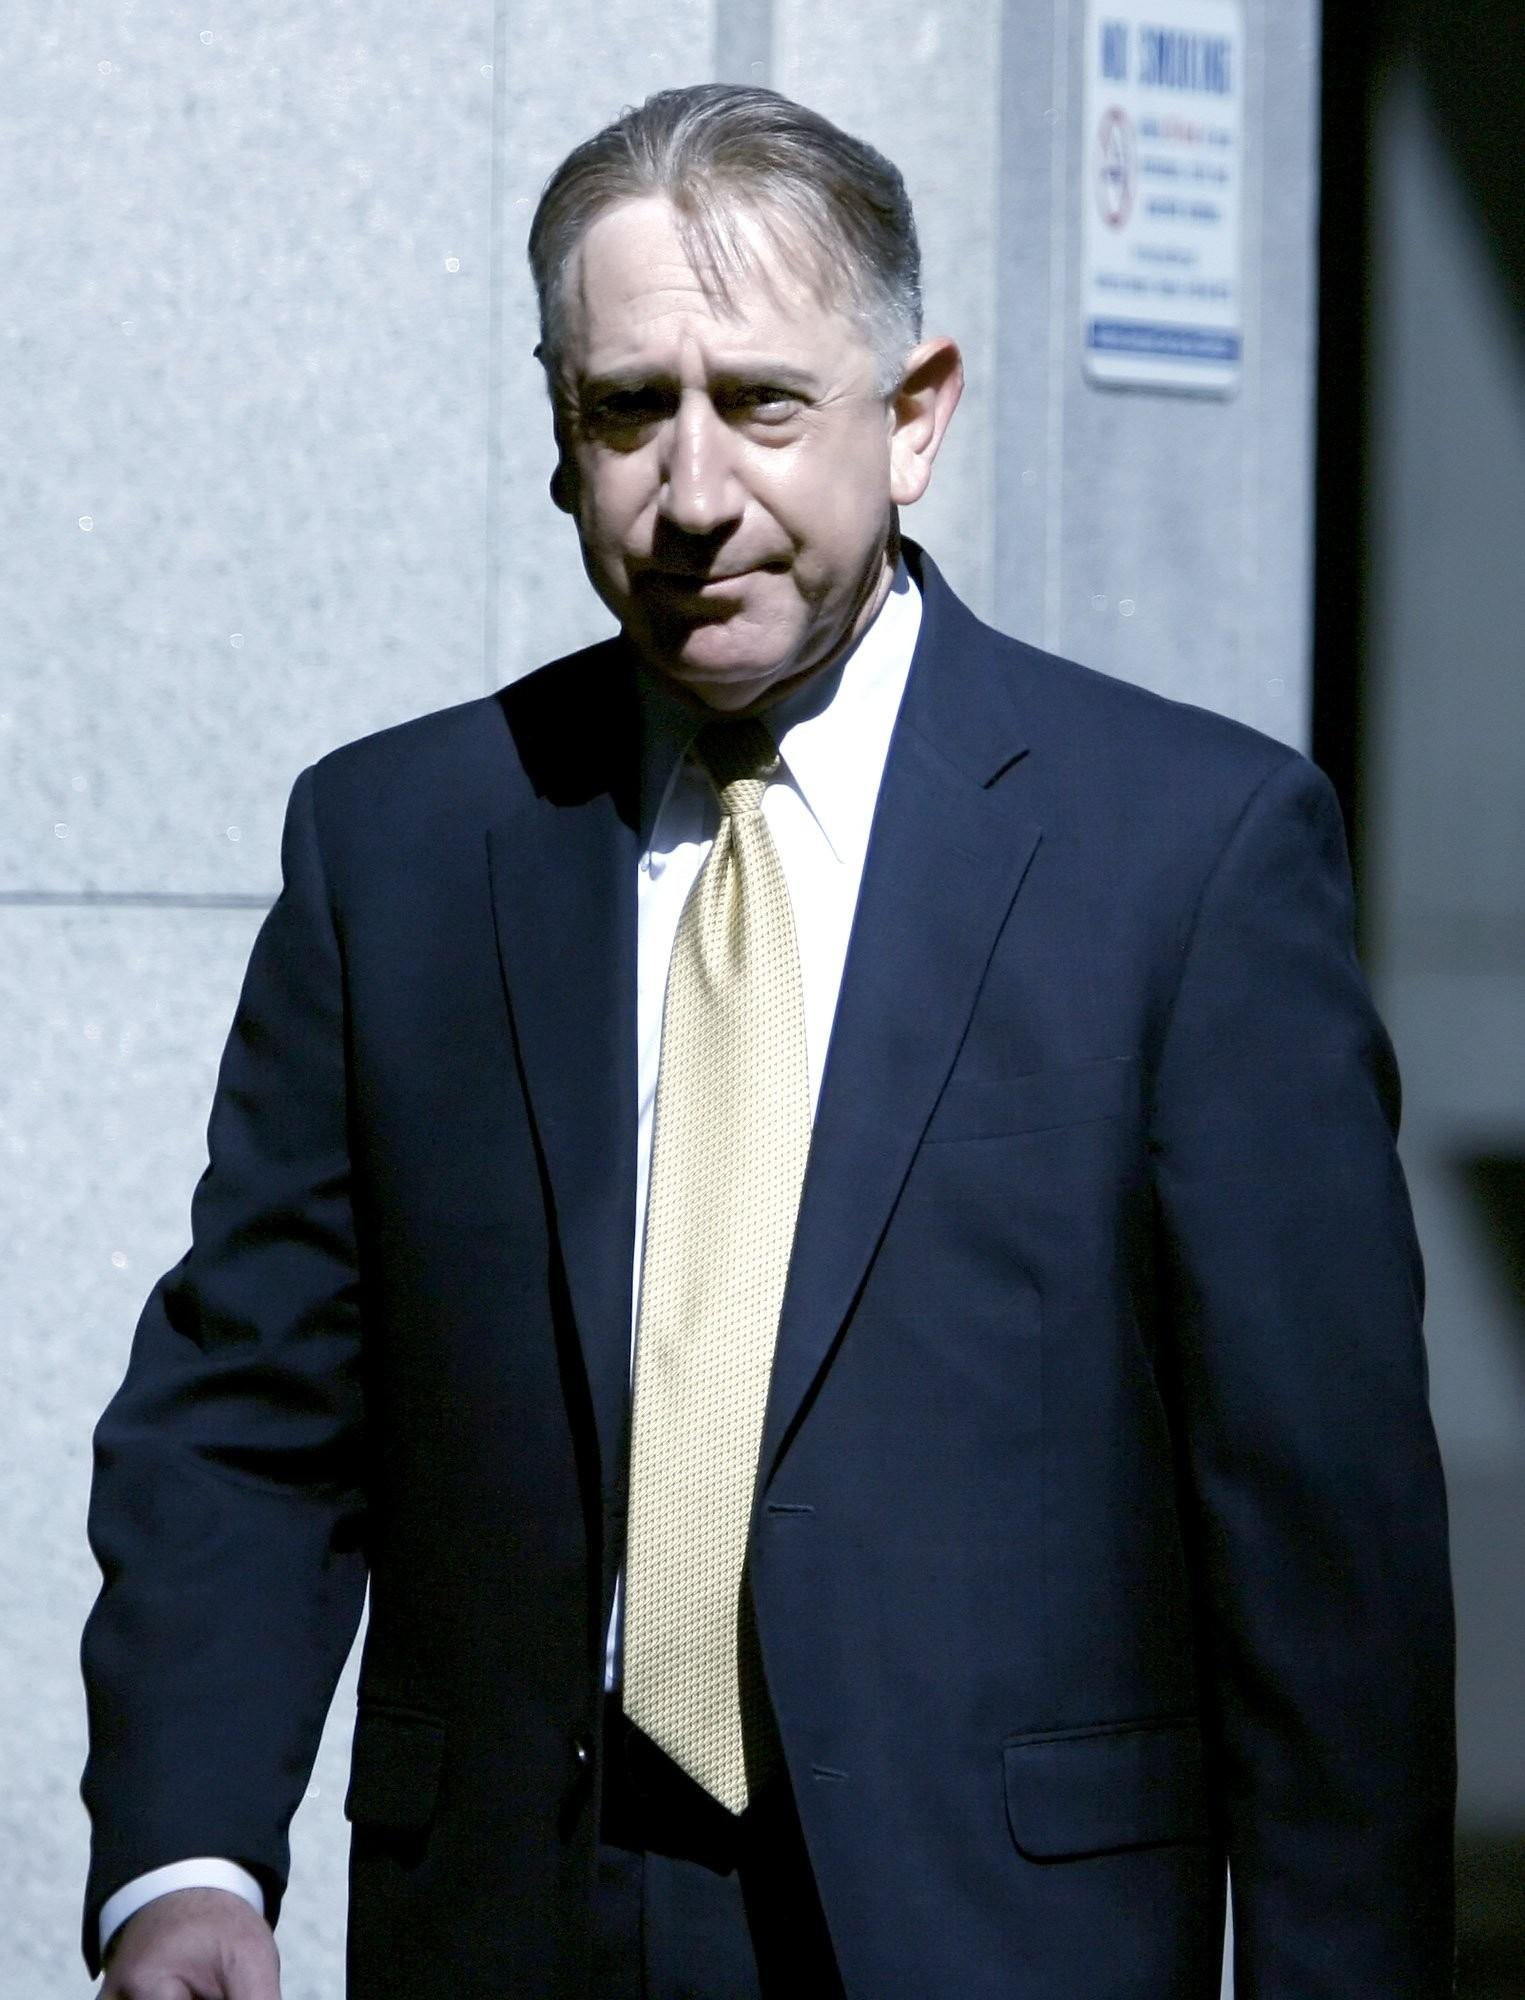 Former Glendale city councilmember John Drayman arrives at the C. S. Foltz Criminal Justice Center in Los Angeles to be arraigned on charges on Tuesday, May 8, 2012.